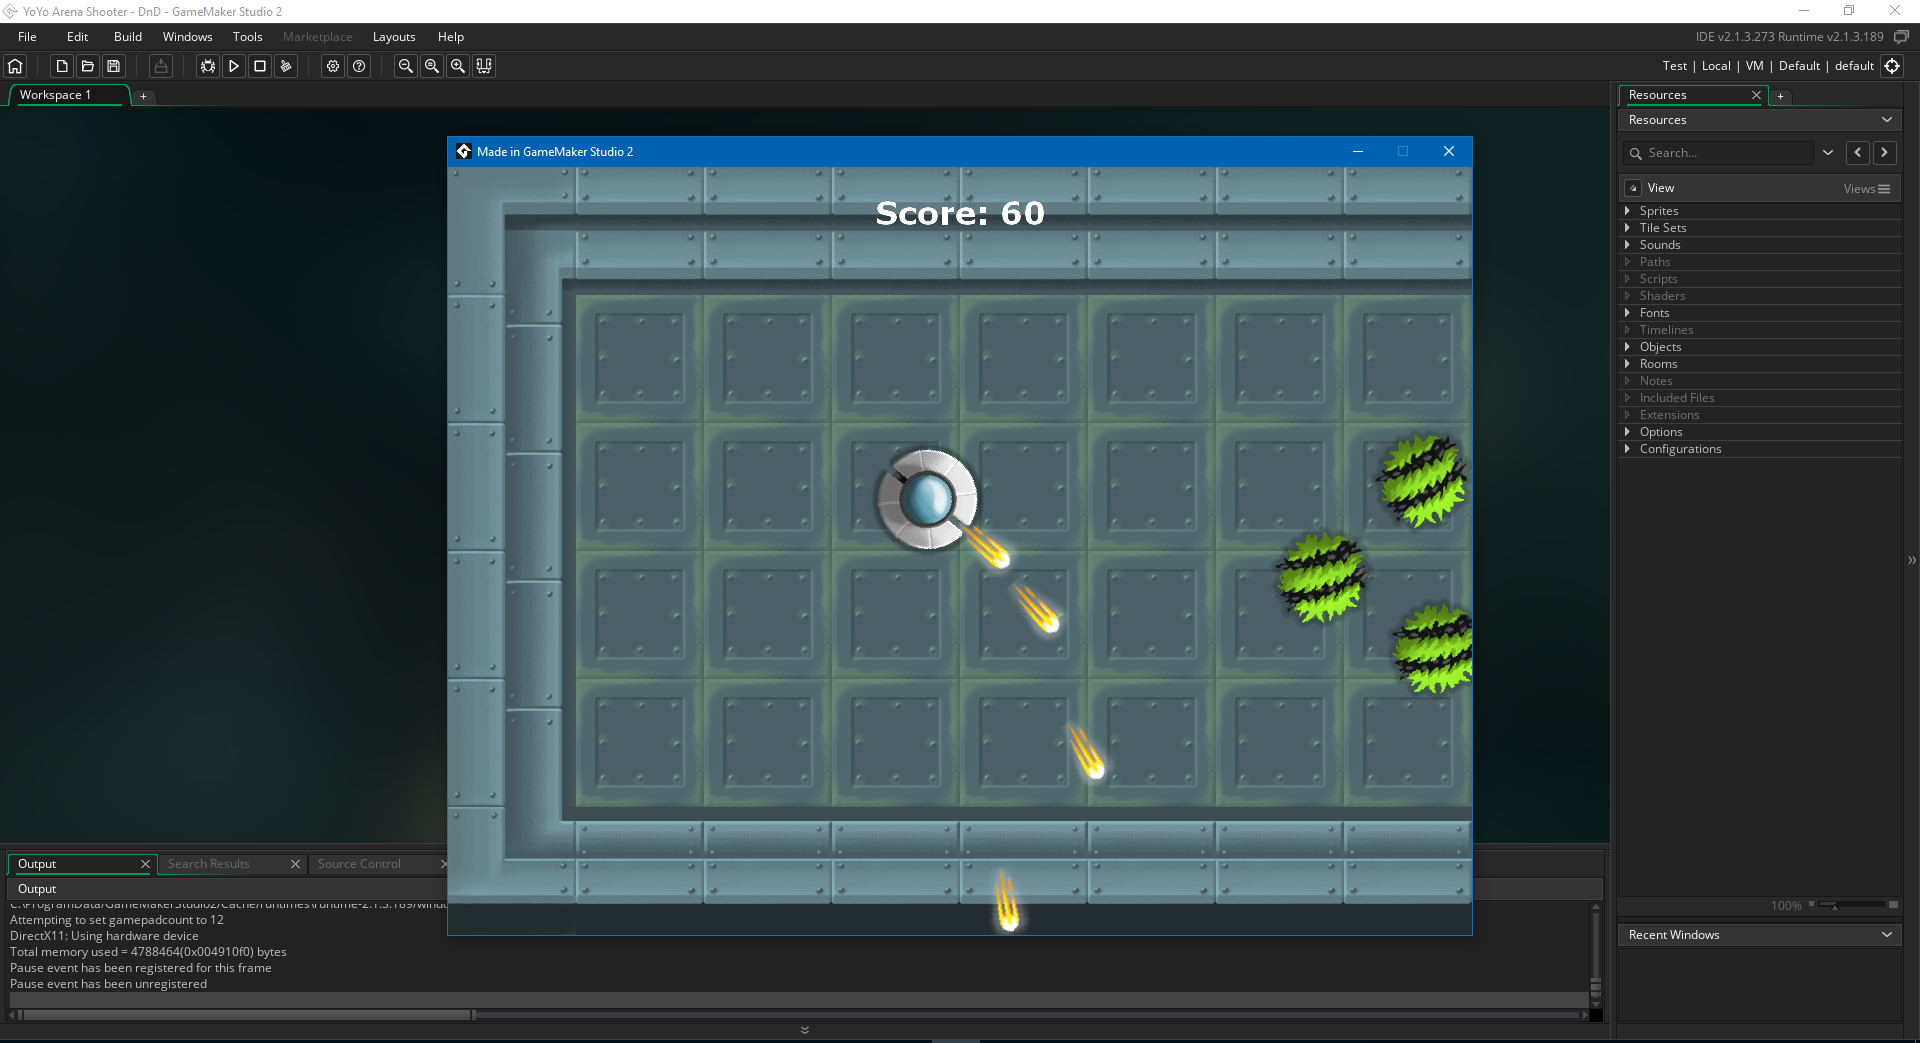 GameMaker Studio 2 Tutorial: A Simple Guide to GMS 2 ...